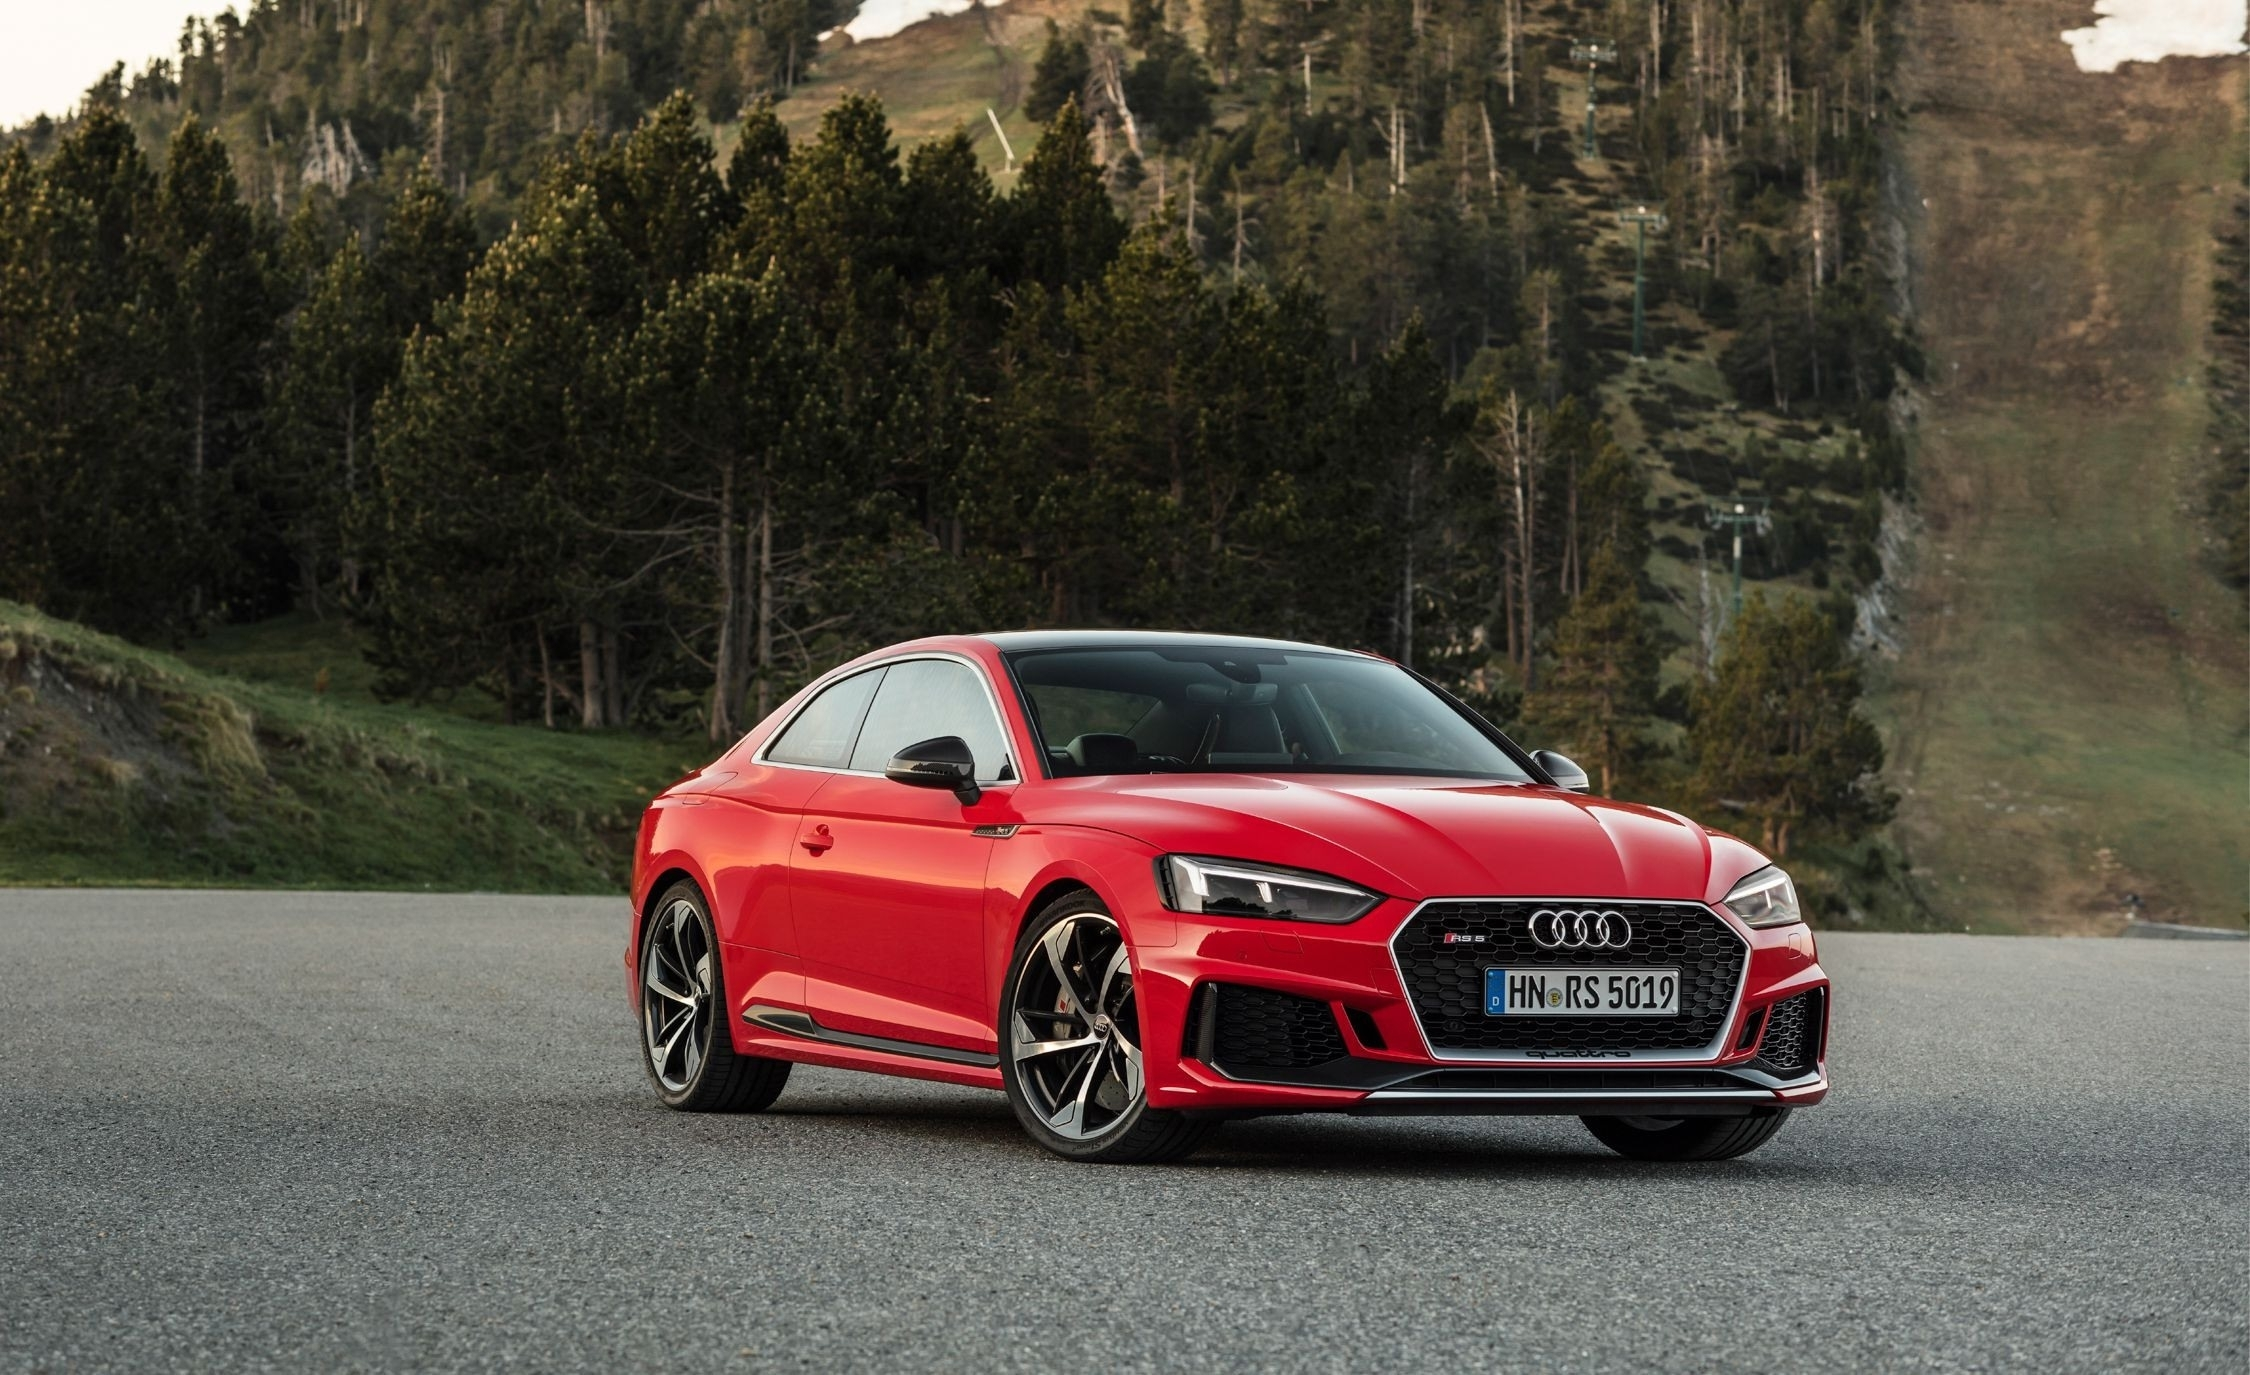 71 The 2019 Audi Rs5 Tdi Concept